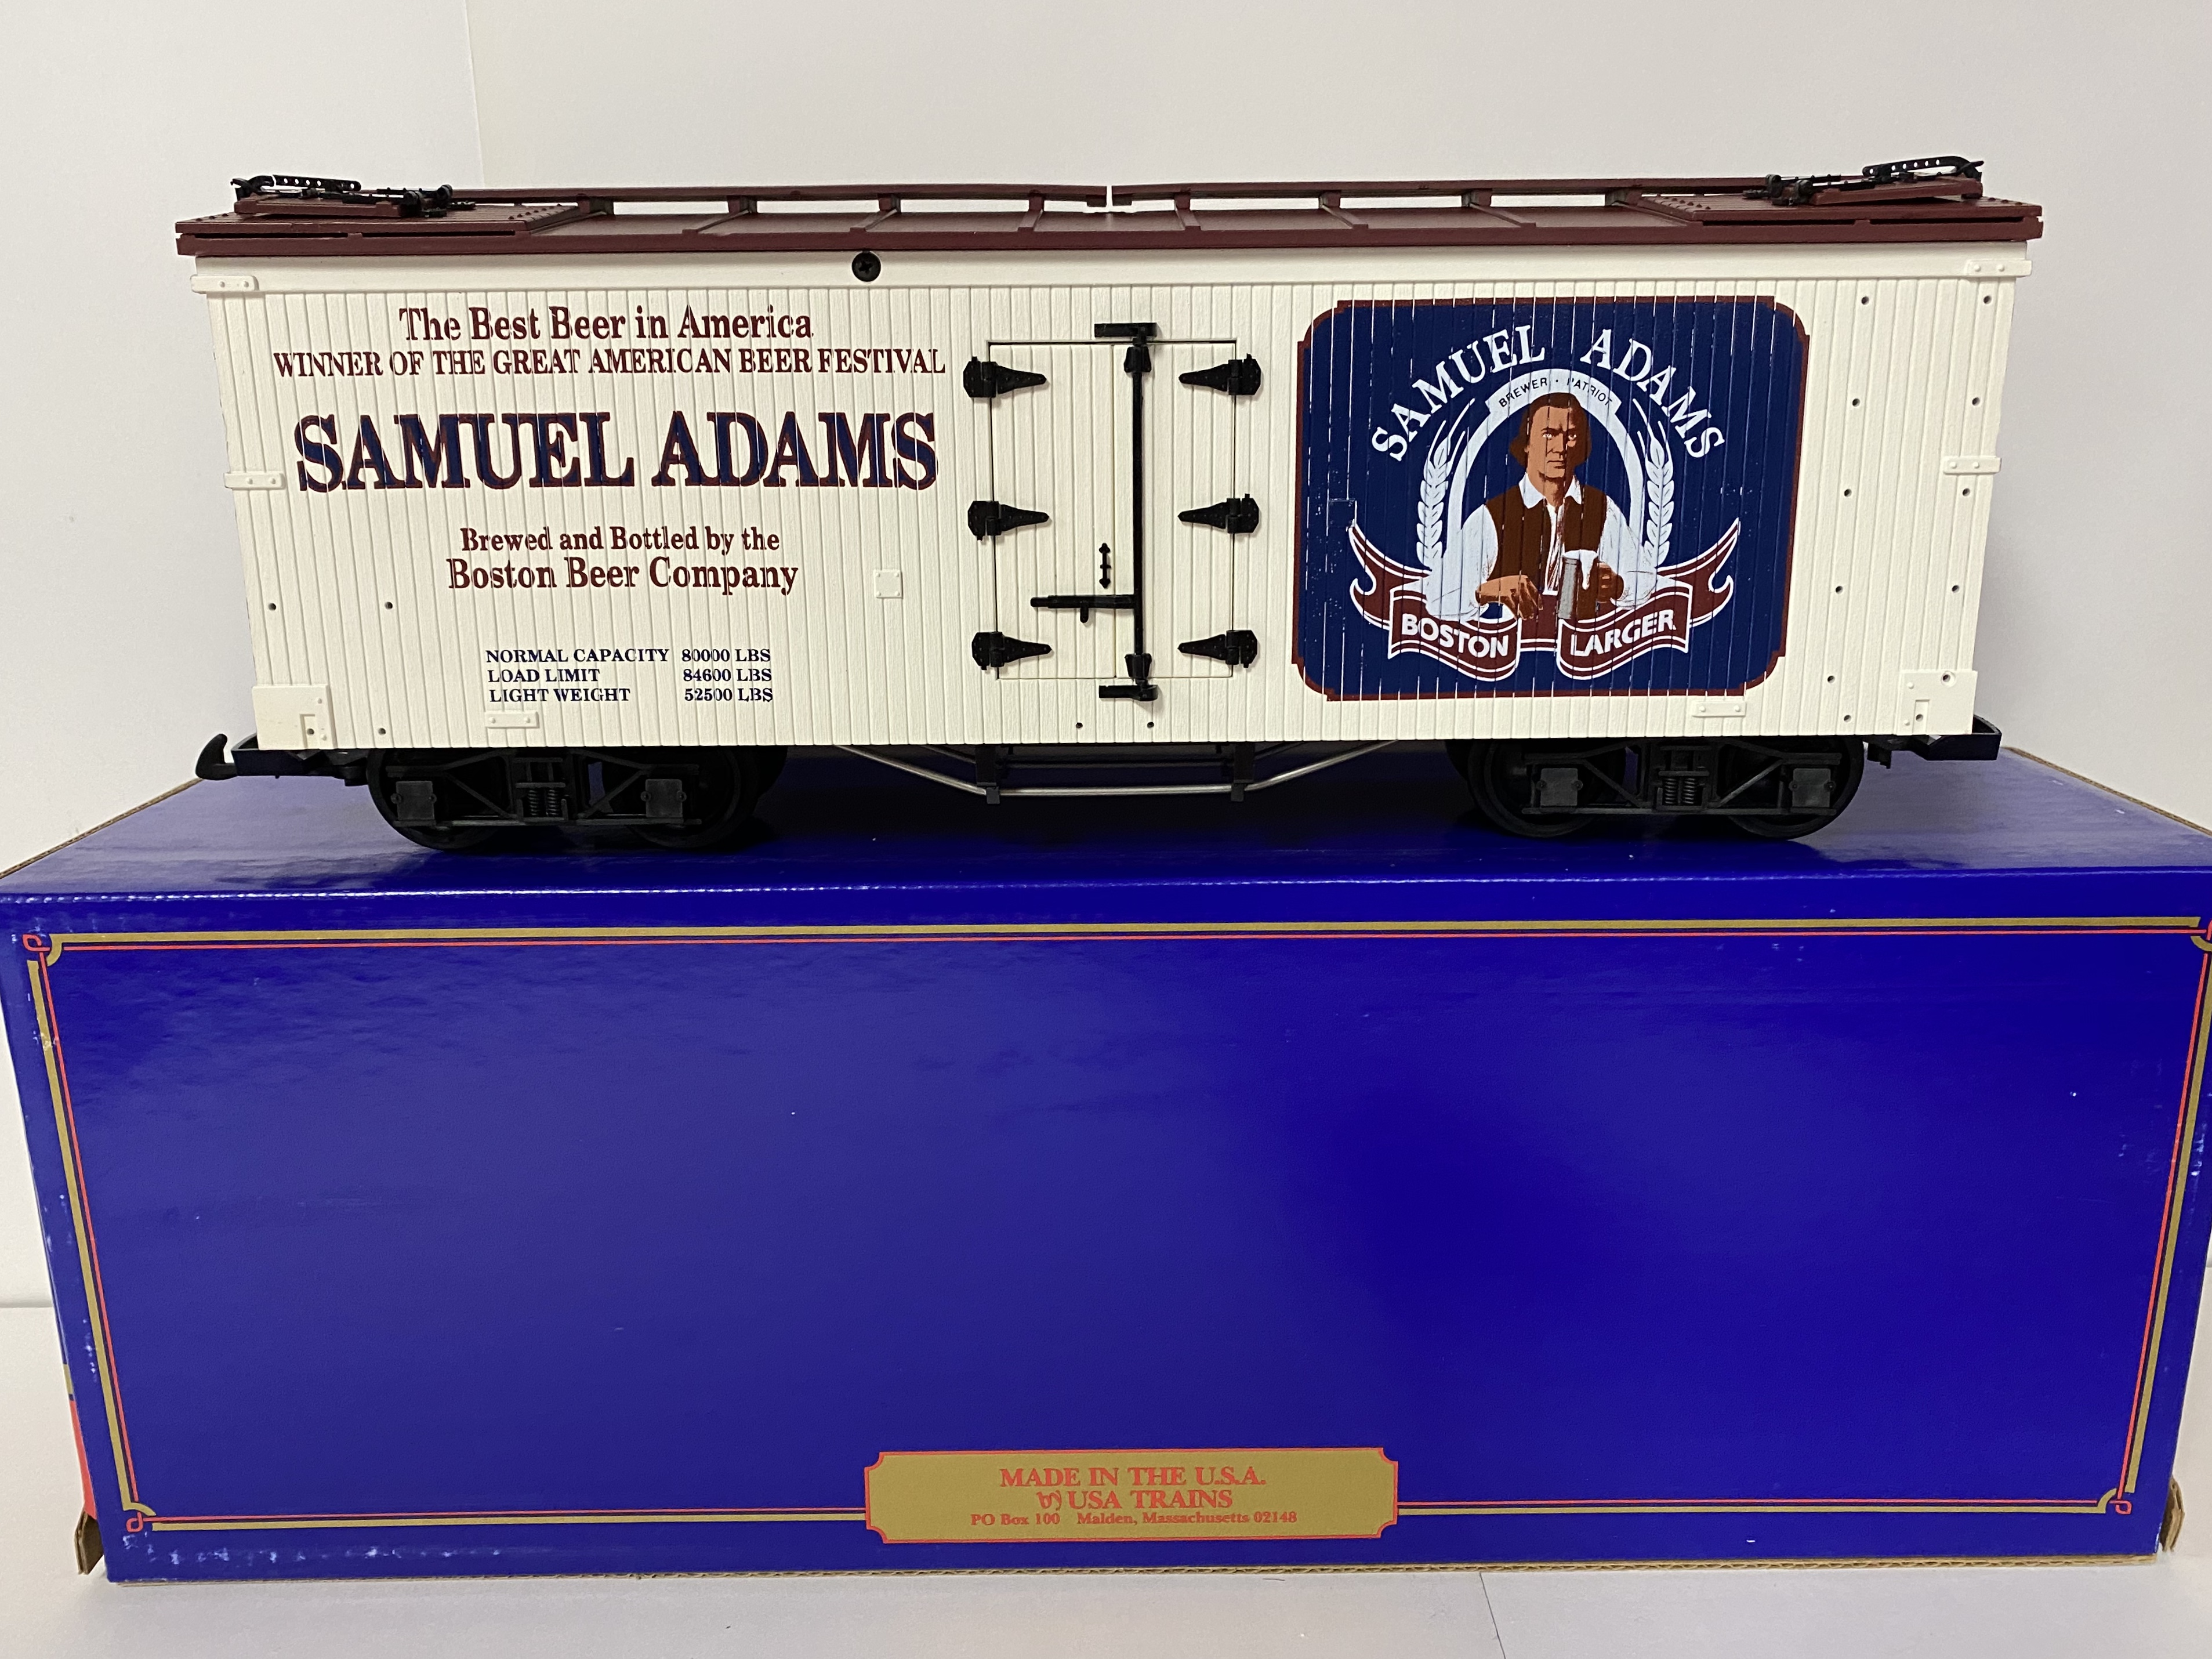 Samual Adams Beer Reefer (USA Trains 1671)